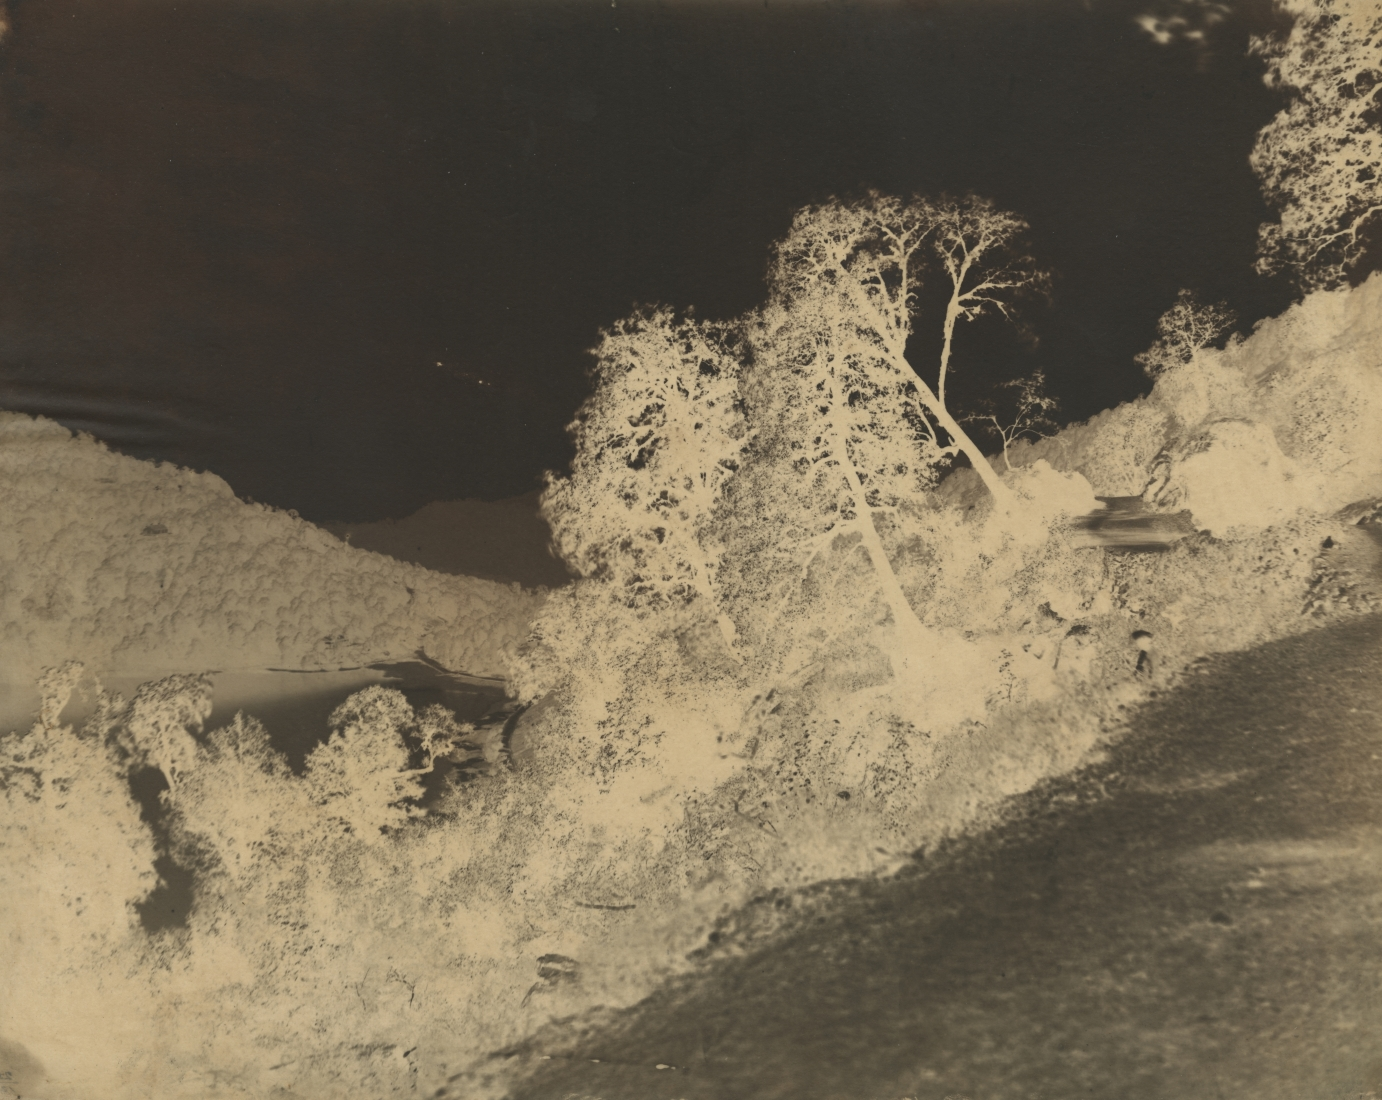 Dr. John MURRAY (Scottish, 1809-1898) View of lake, India, circa 1858-1862 Calotype negative, waxed, with selectively applied pigment 38.2 x 47.2 cm